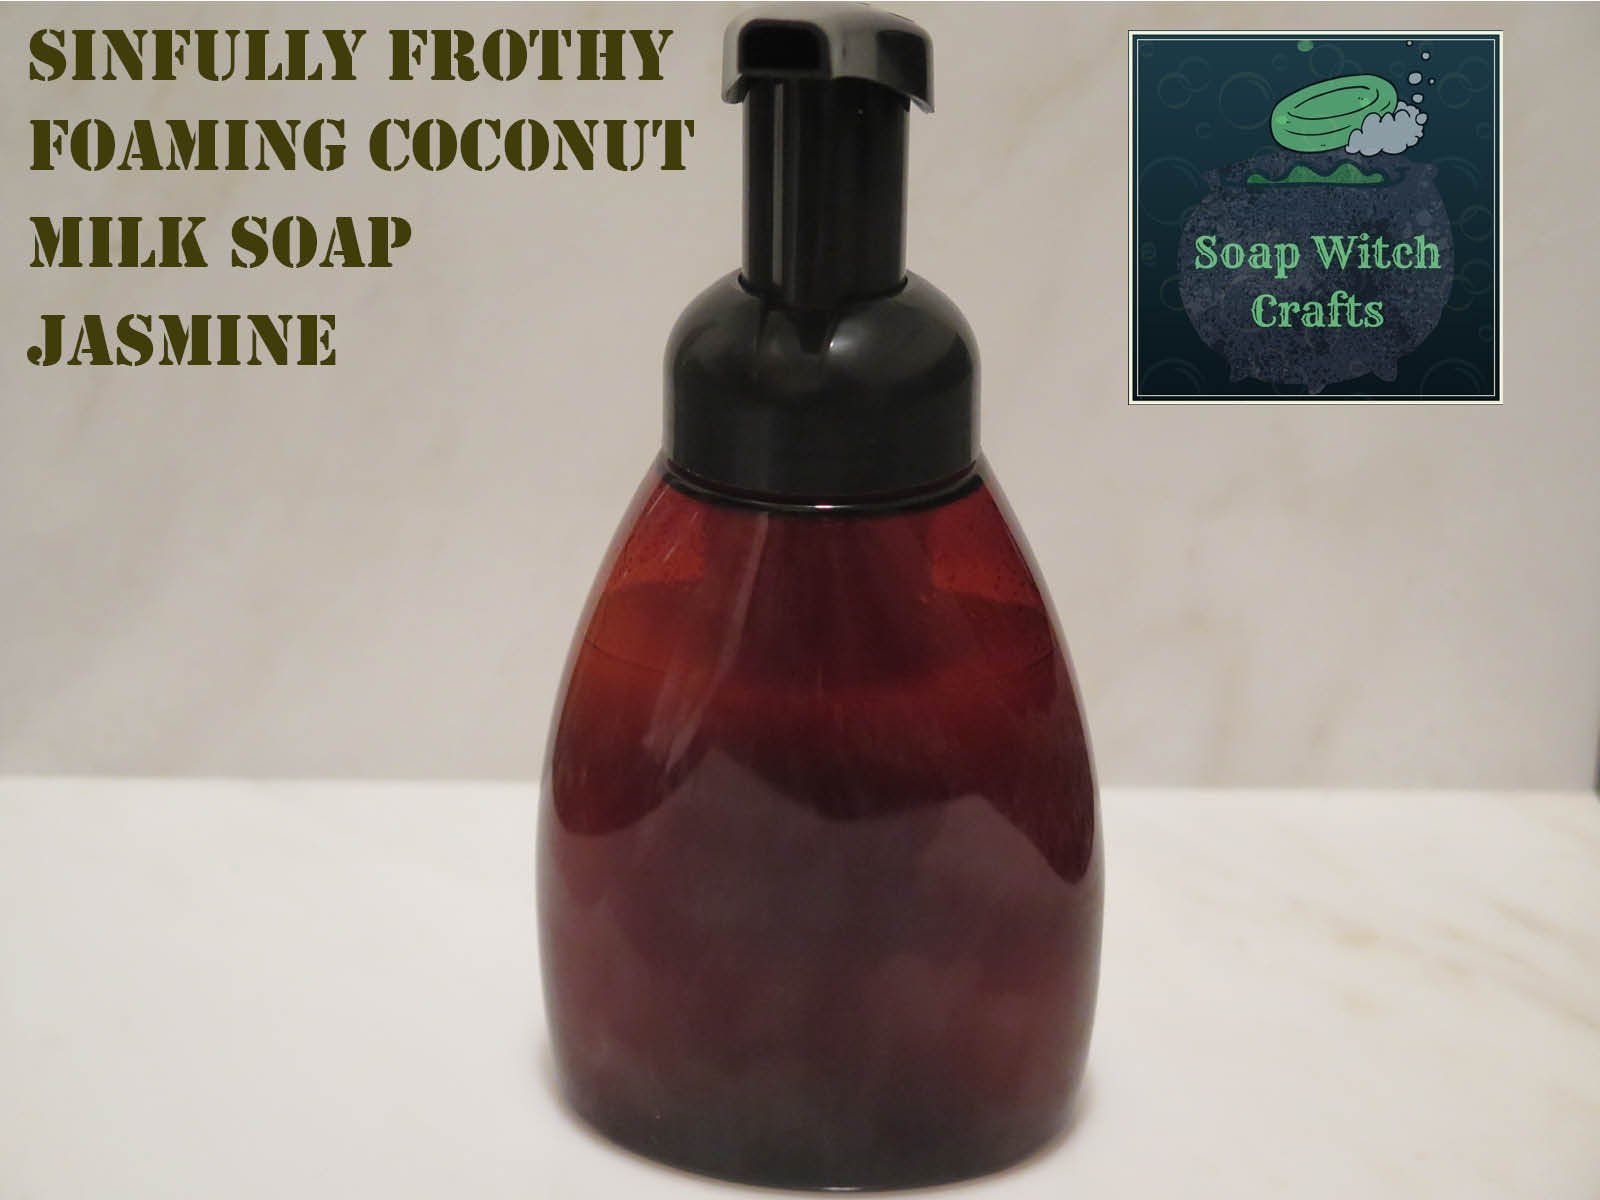 Sinfully Frothy Foaming Coconut Milk Soap - Jasmine Scented